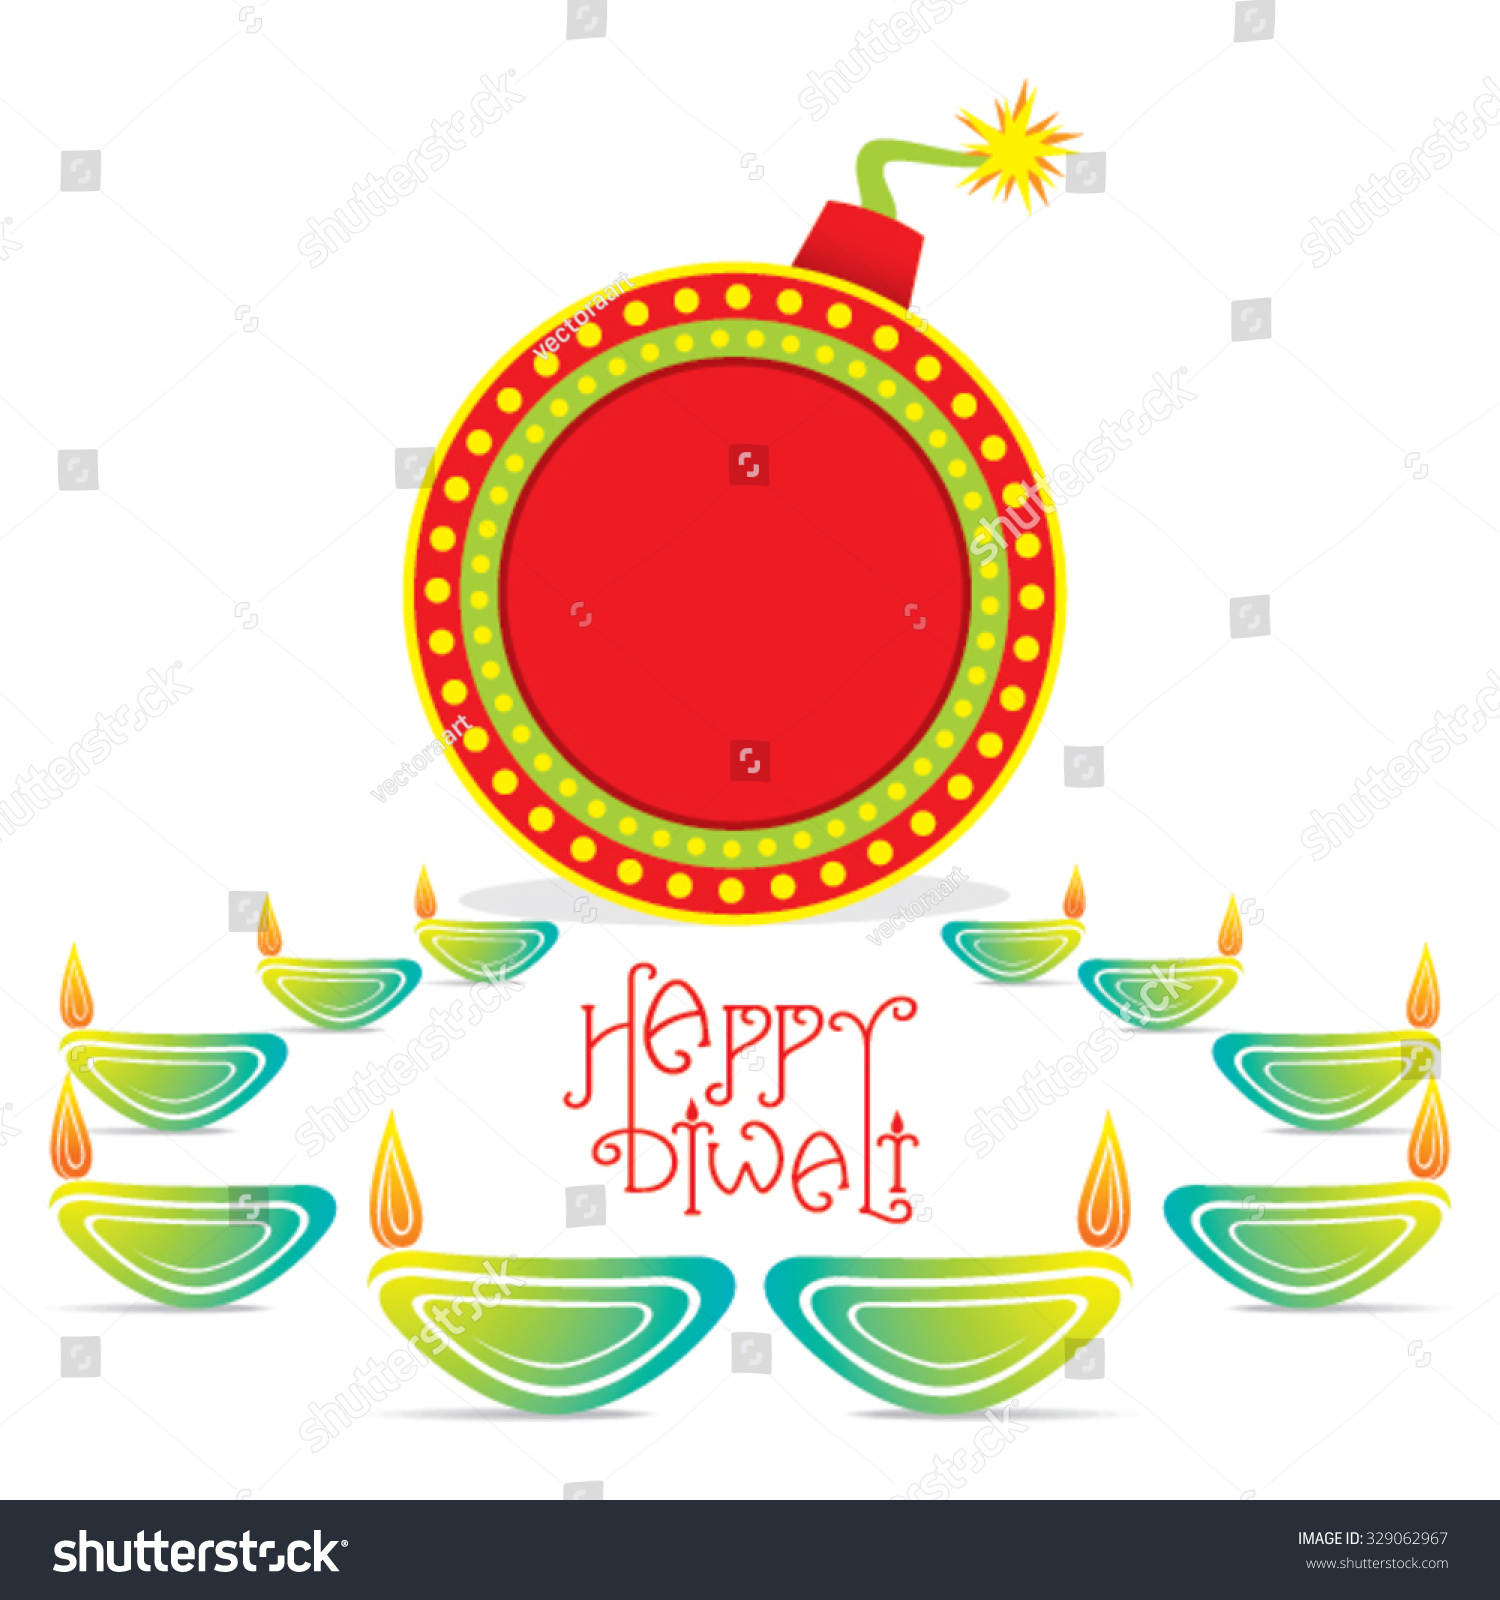 Creative Happy Diwali Greeting Card Design Stock Vector Royalty